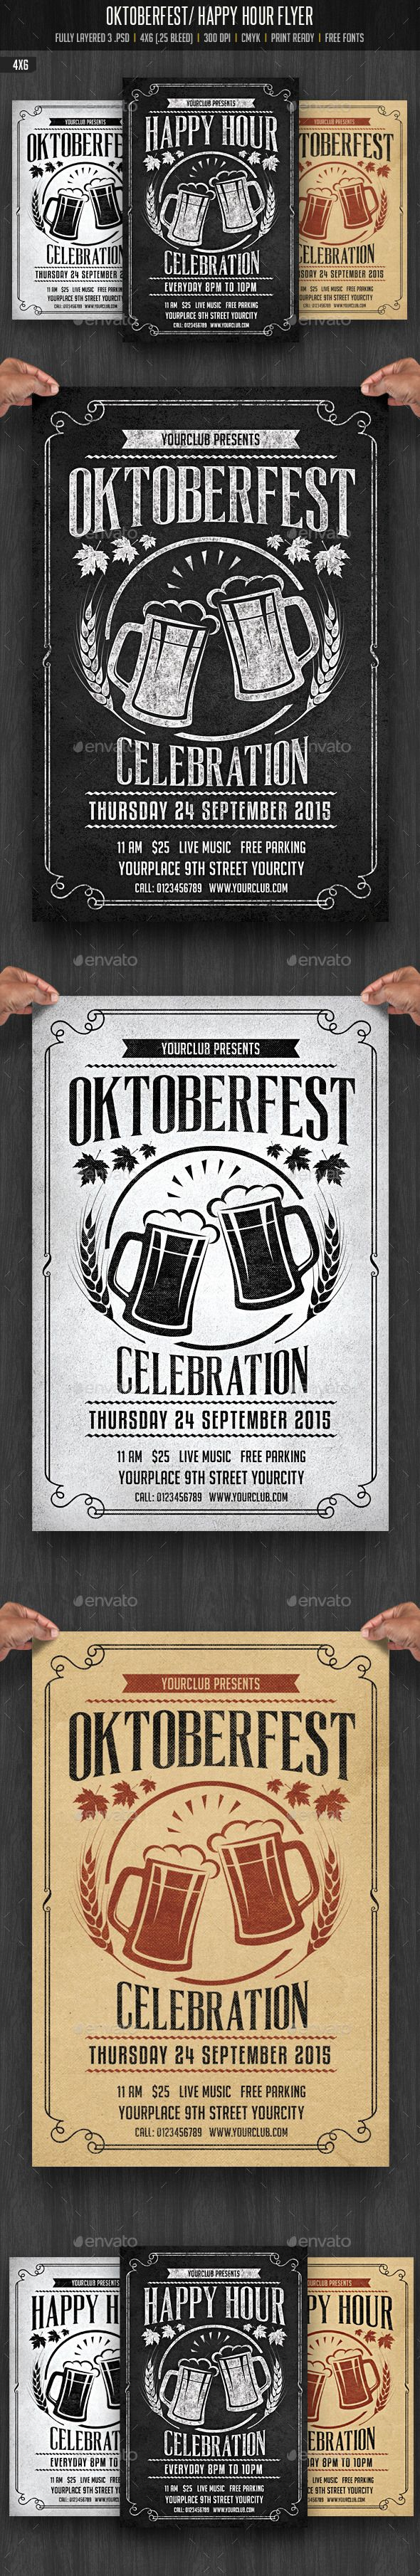 Oktobefest / Happy Hour Flyer Template #design Download: http://graphicriver.net/item/oktobefest-happy-hour-flyer/12755962?ref=ksioks